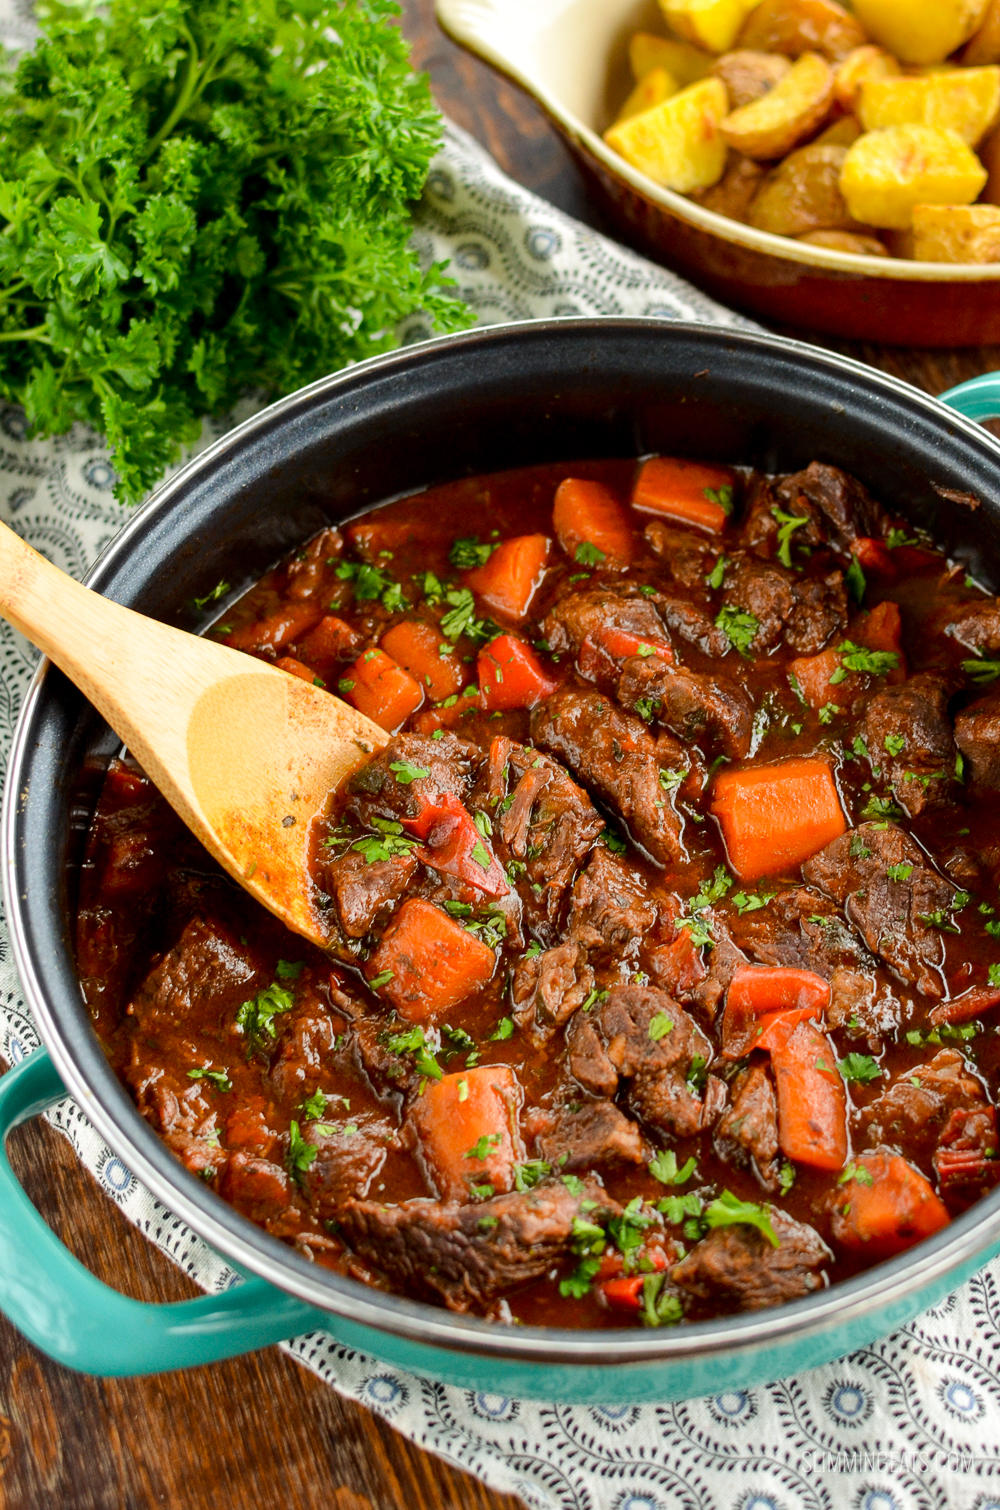 balsamic braised beef in a casserole pan with wooden spoon